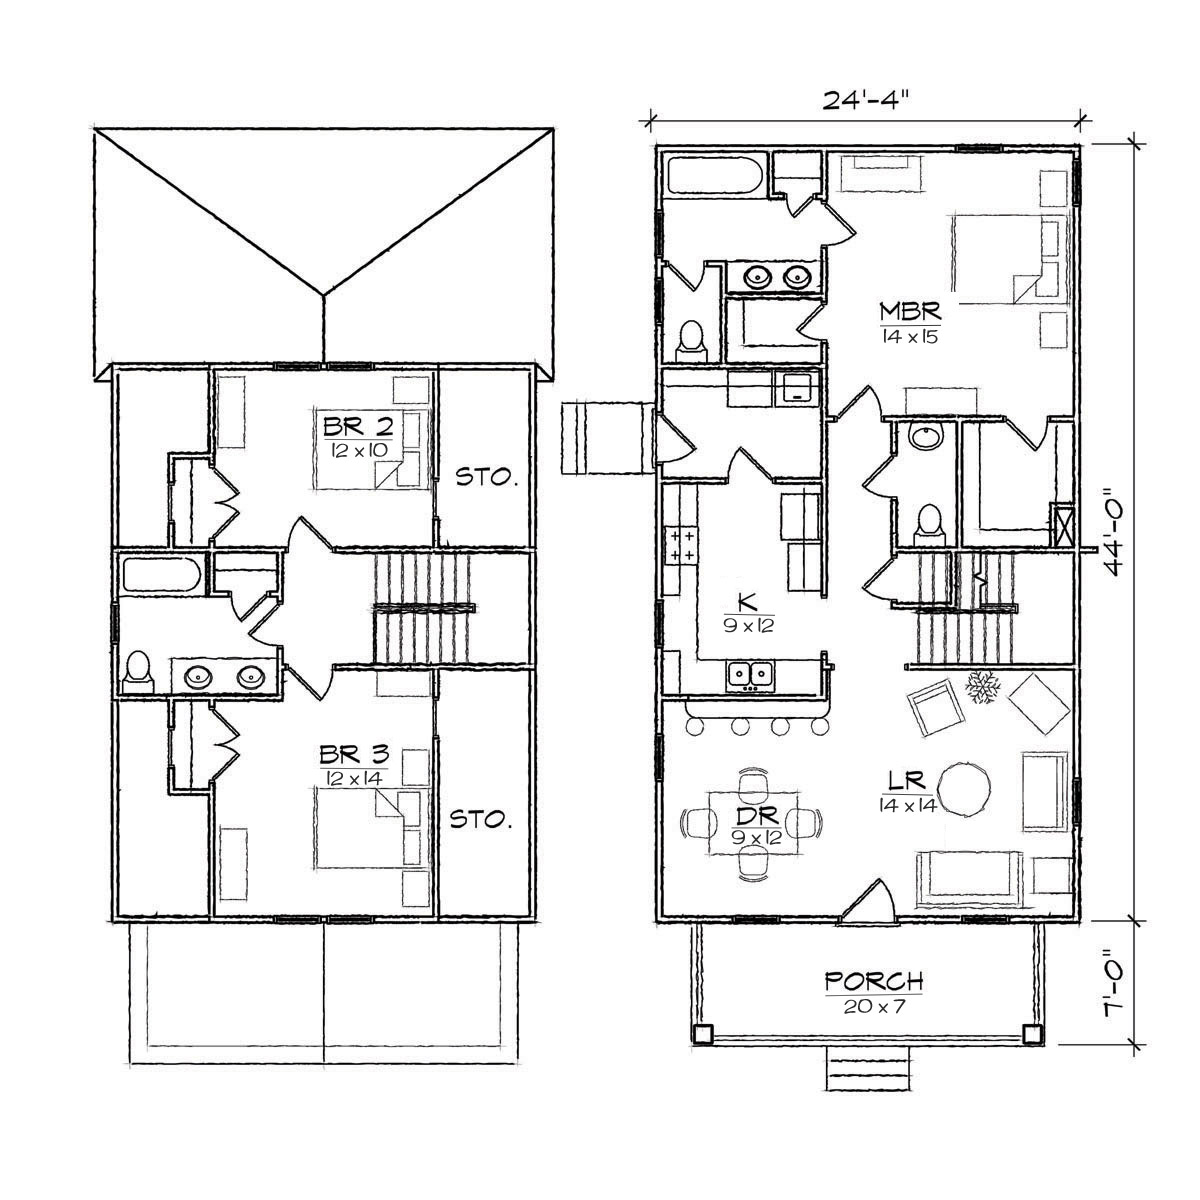 Ansley iii bungalow floor plan tightlines designs for Bungalow house plans with inlaw suite